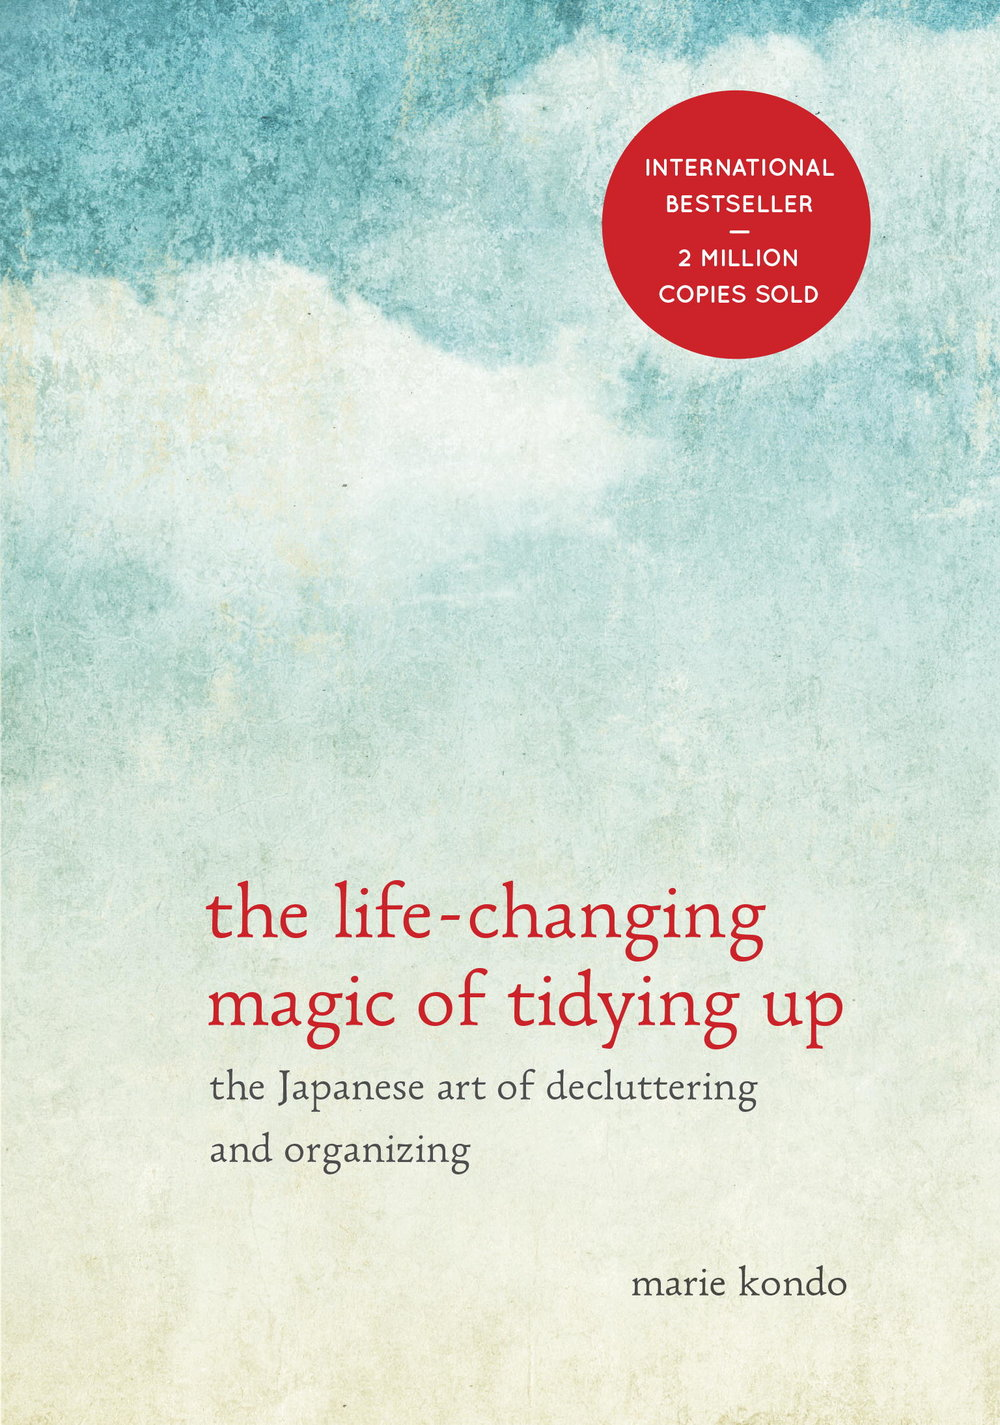 Books on Simplicity - The Life Changing Magic Of Tidying Up by Marie Kondo